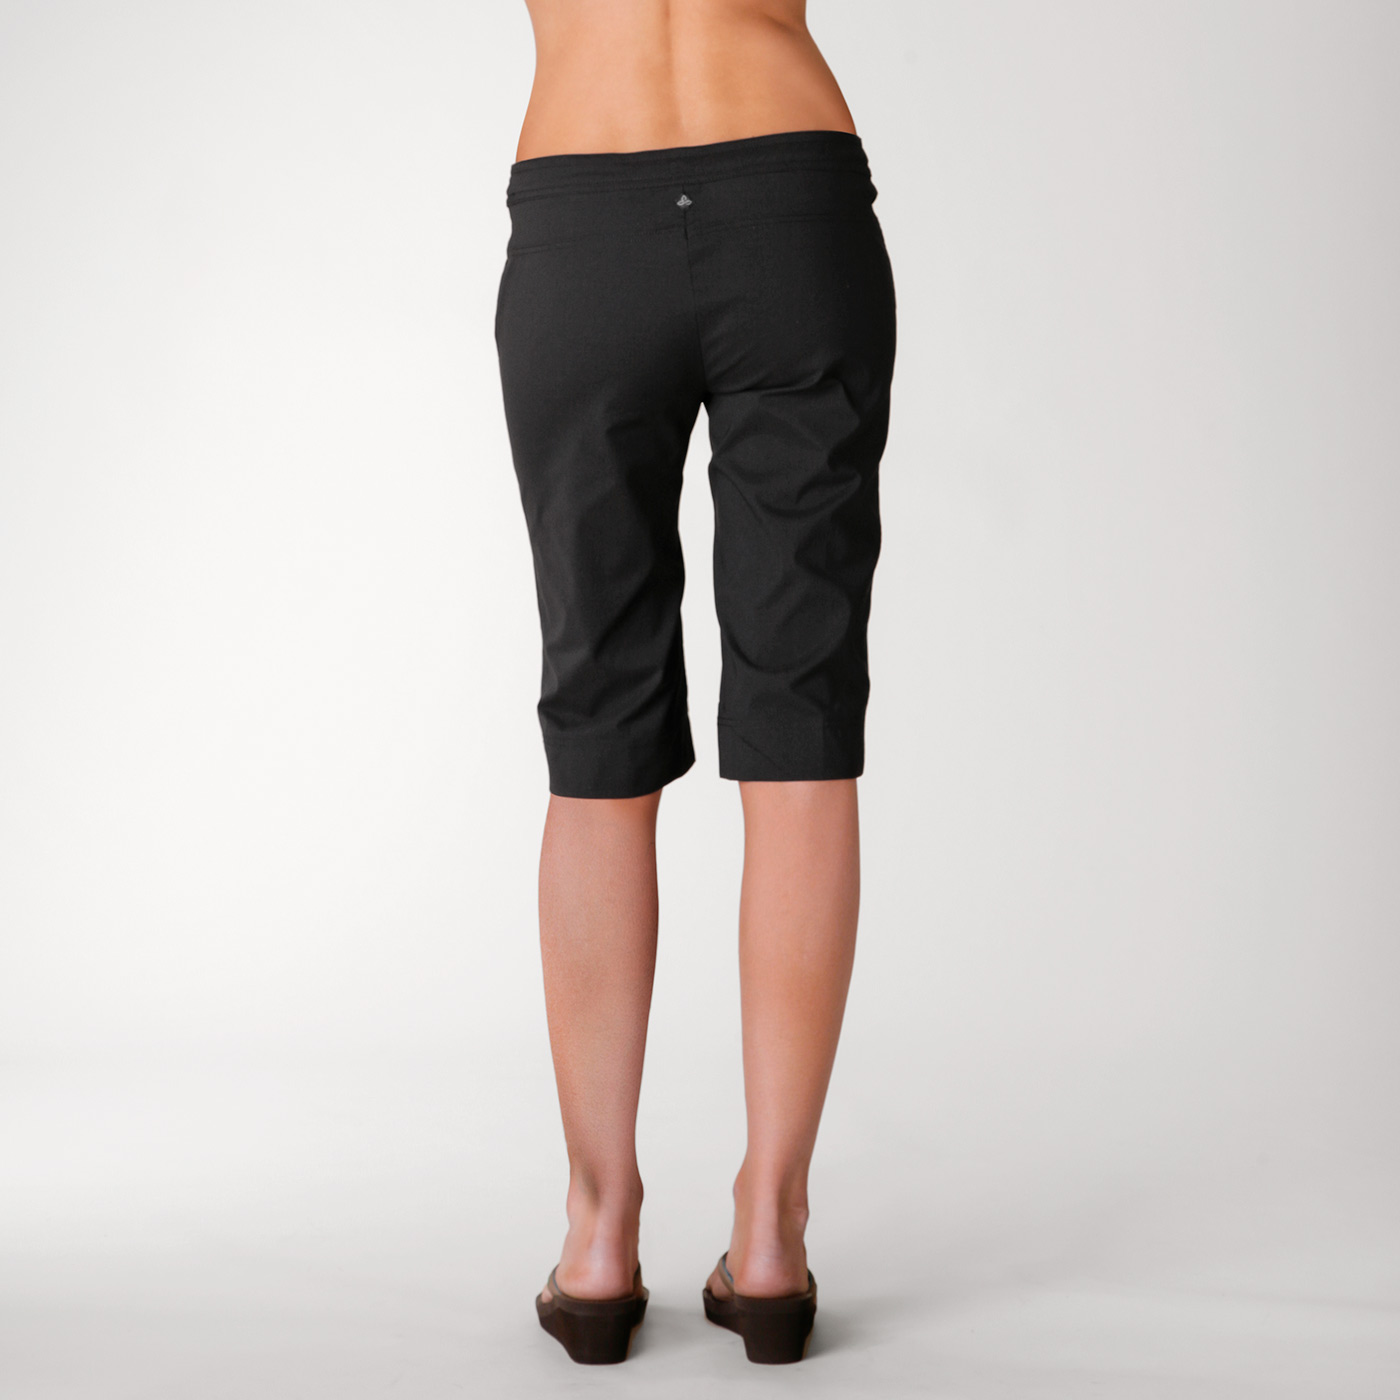 Prana Bliss Knicker Womens Apparel At Vickerey